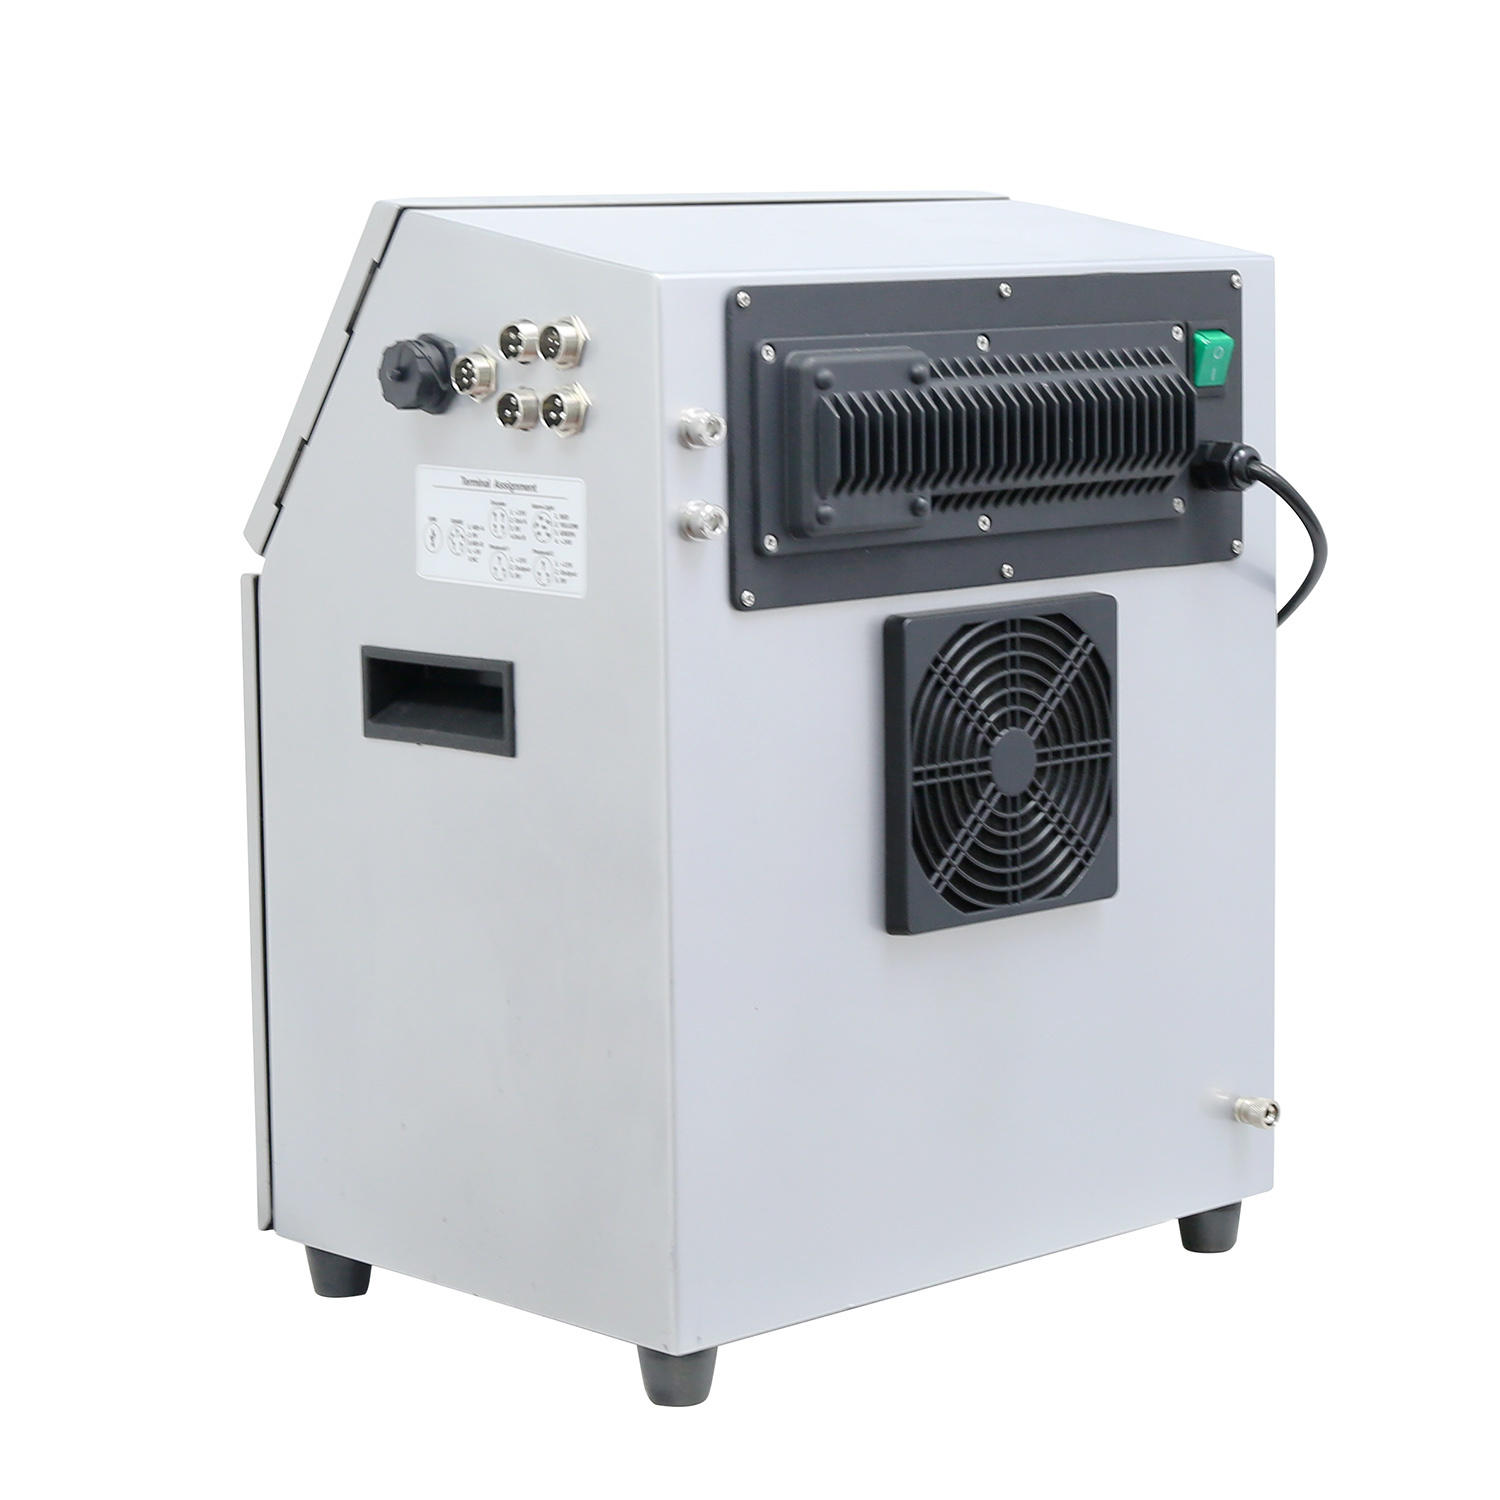 Lead Tech Lt800 Barcode Printer Automatic Printing